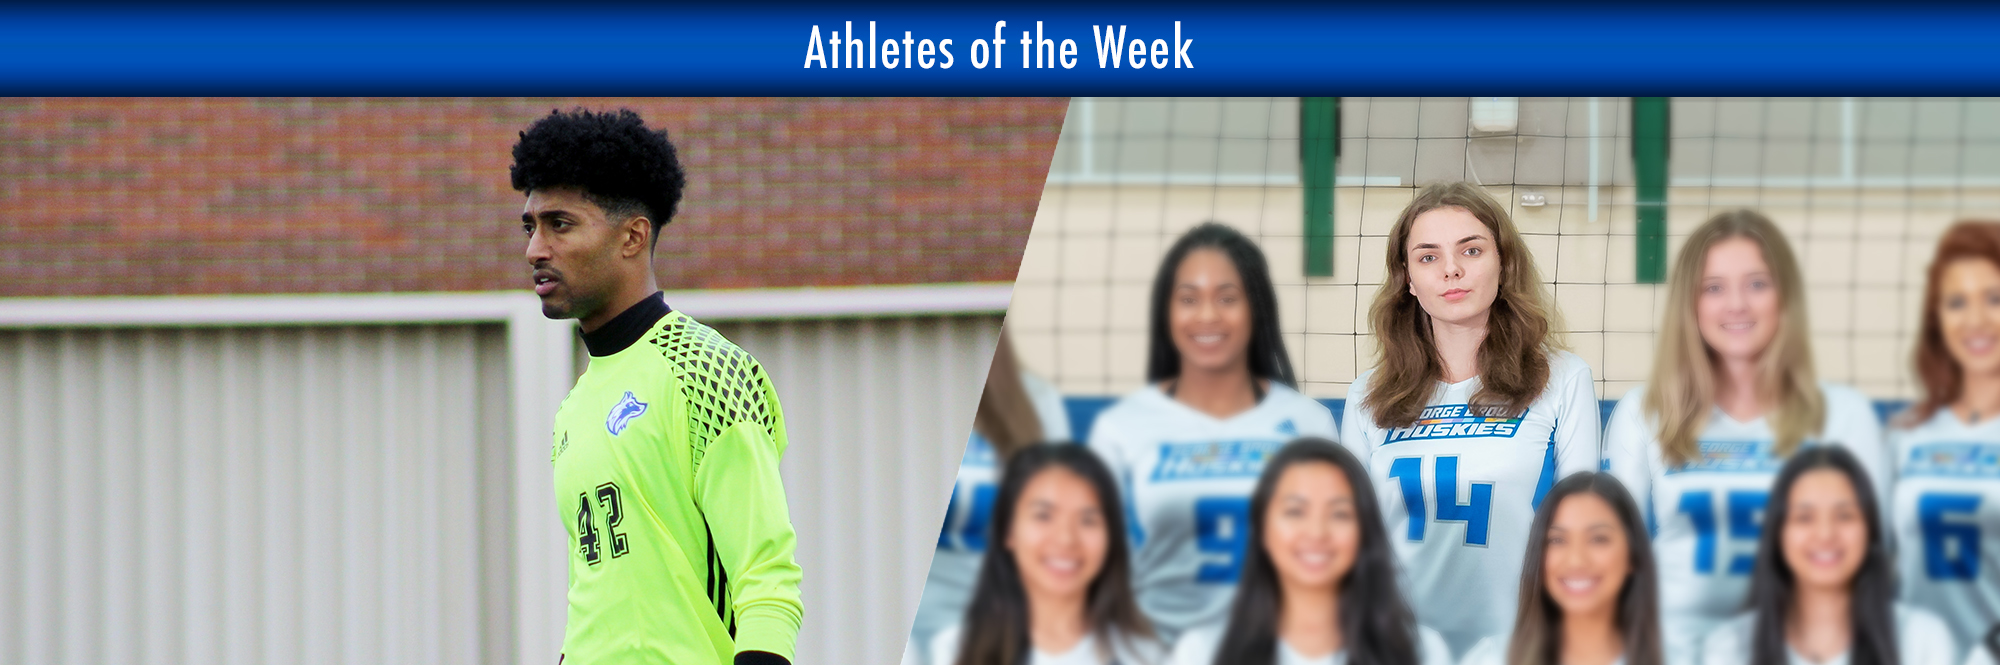 ALINA KARPOVNIKOVA, JORDAN SODHI NAMED HUSKIES ATHLETES OF THE WEEK